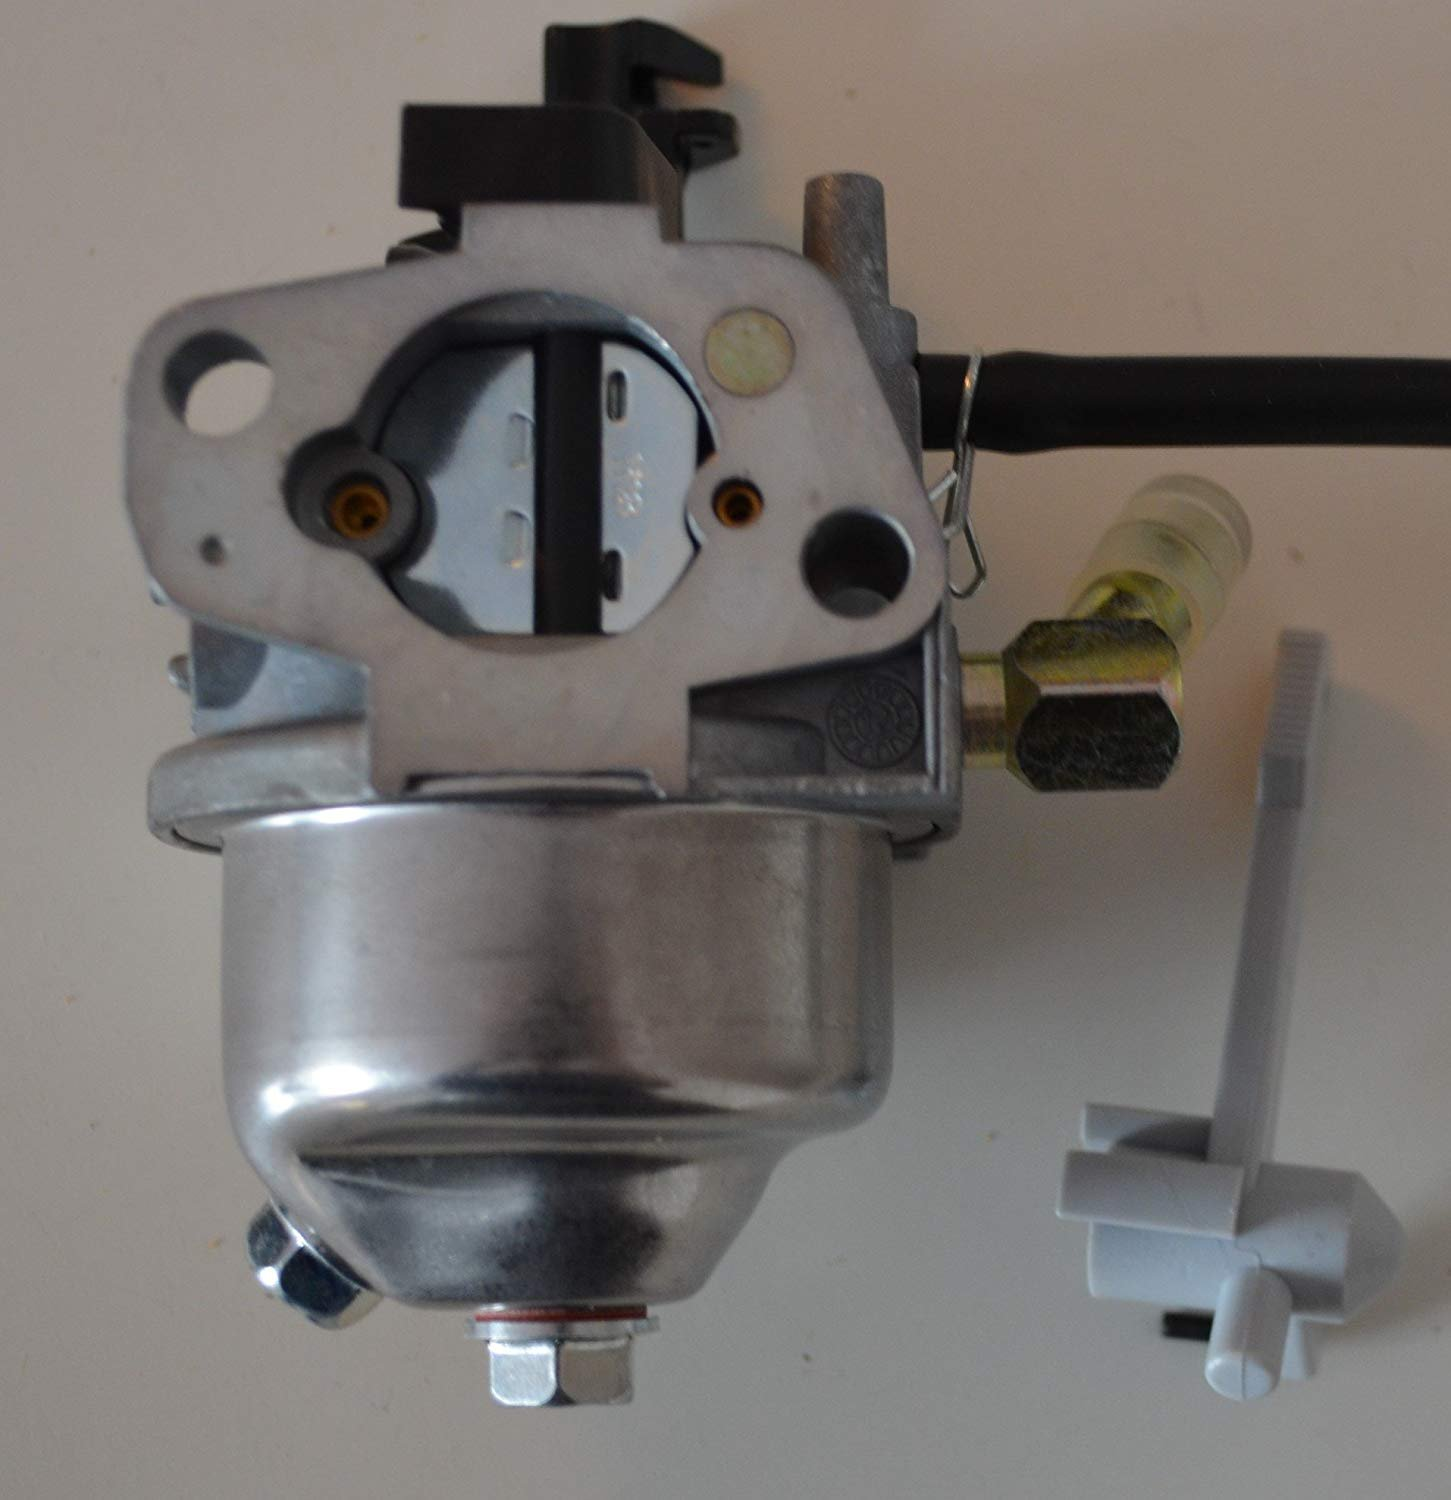 Aquiver Auto Parts New Carburetor for Toro Power Clear 421 621 Carb 120-4418 120-4419 119-1996 Snow Thrower Replaces OEM# Toro 120-4418 120-4419 119-1996,Stens 520-872